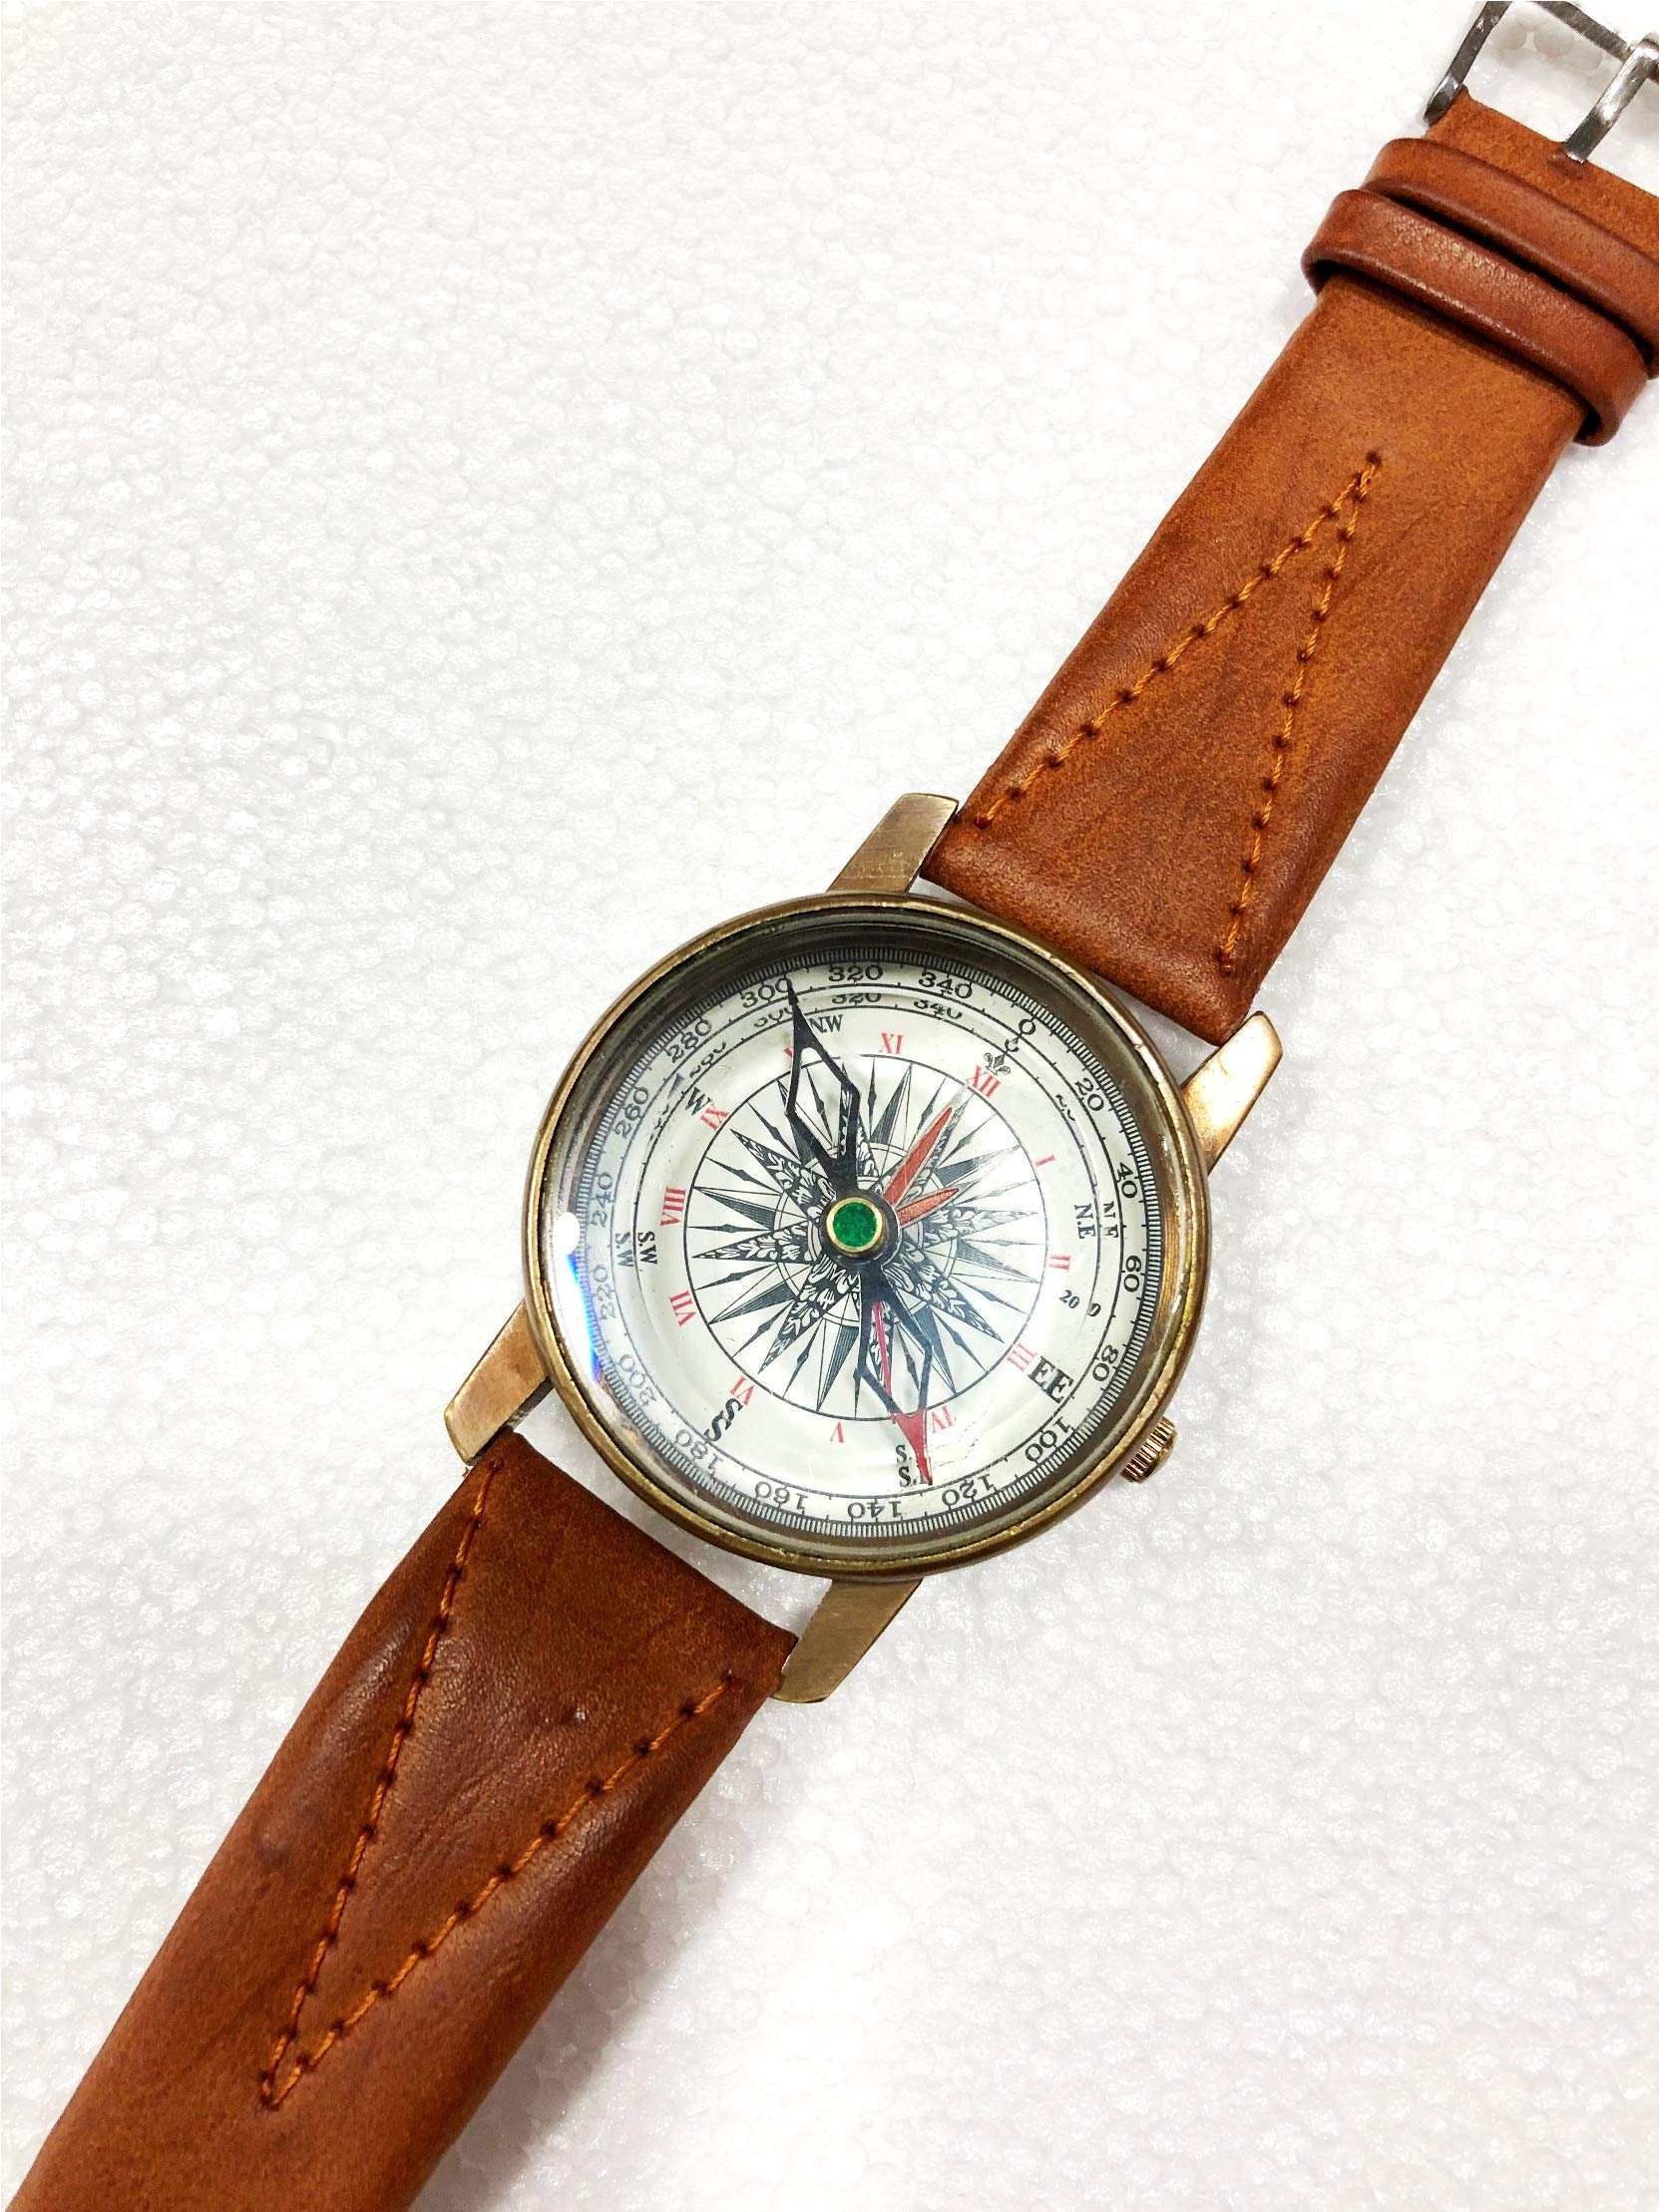 Vintage Nautical Clock Compass 2 in 1 Antique Brass Wrist Watch Leather Strap